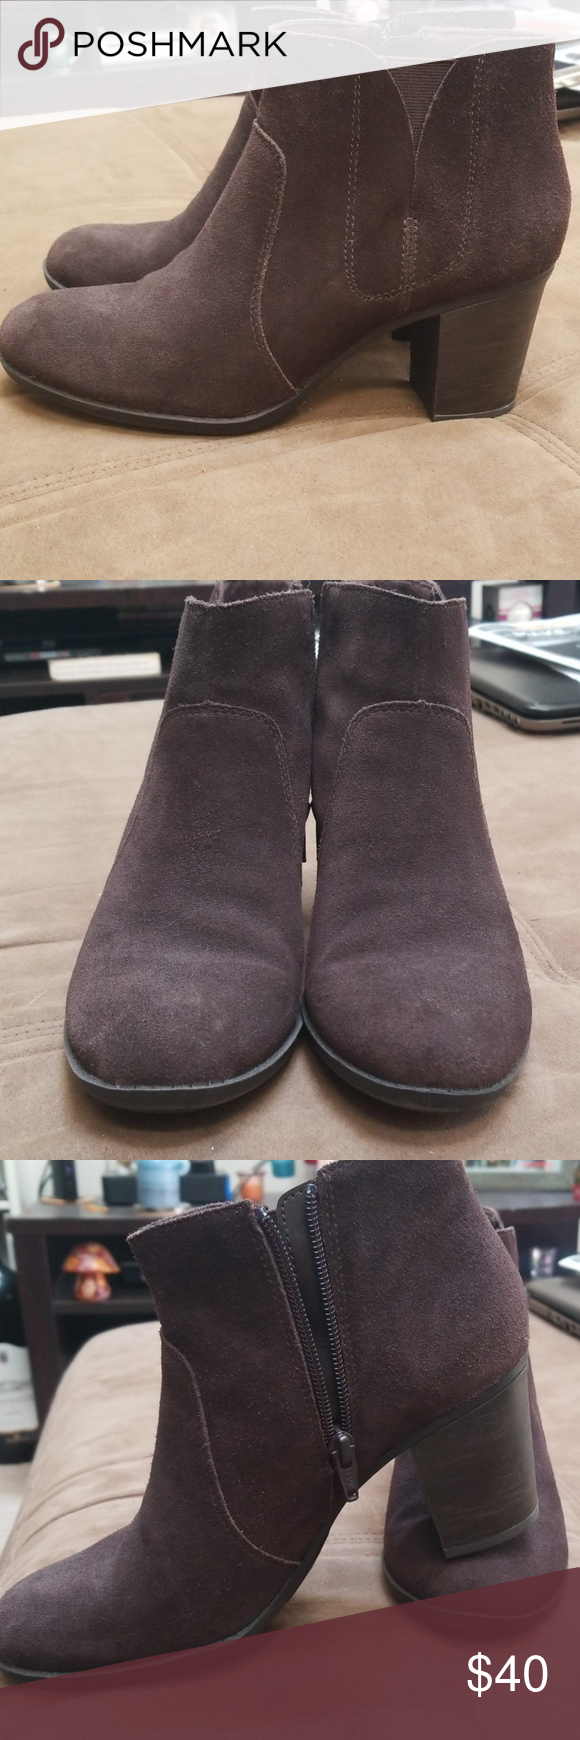 Clark's brown suede ankle boots Worn one time, brown Clark's ankle boots.  Super cute with skinny jeans. Clarks Shoes Ankle Boots & Booties #skinnyjeansandankleboots